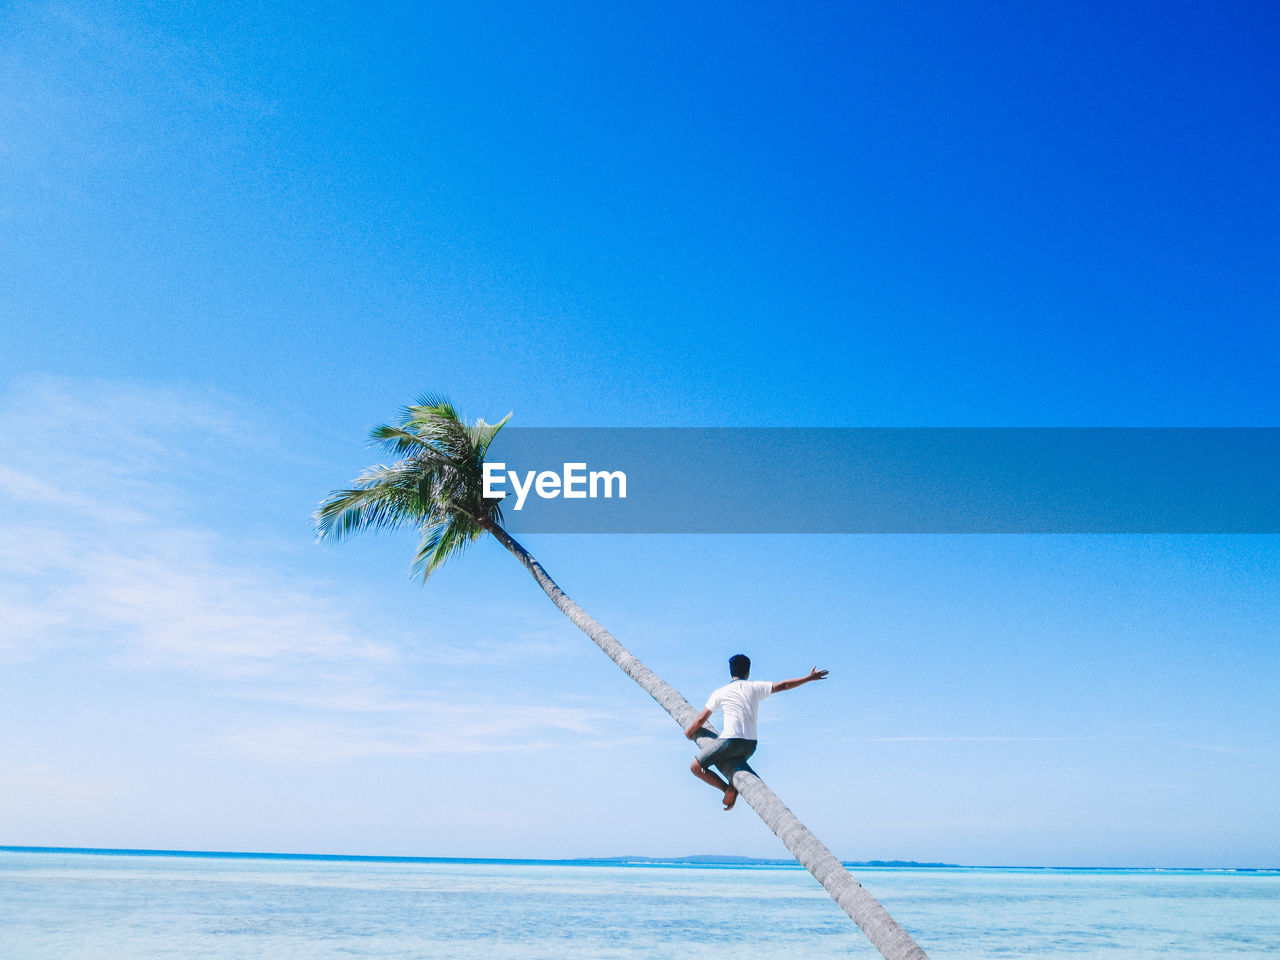 LOW ANGLE VIEW OF PALM TREE BY SEA AGAINST SKY